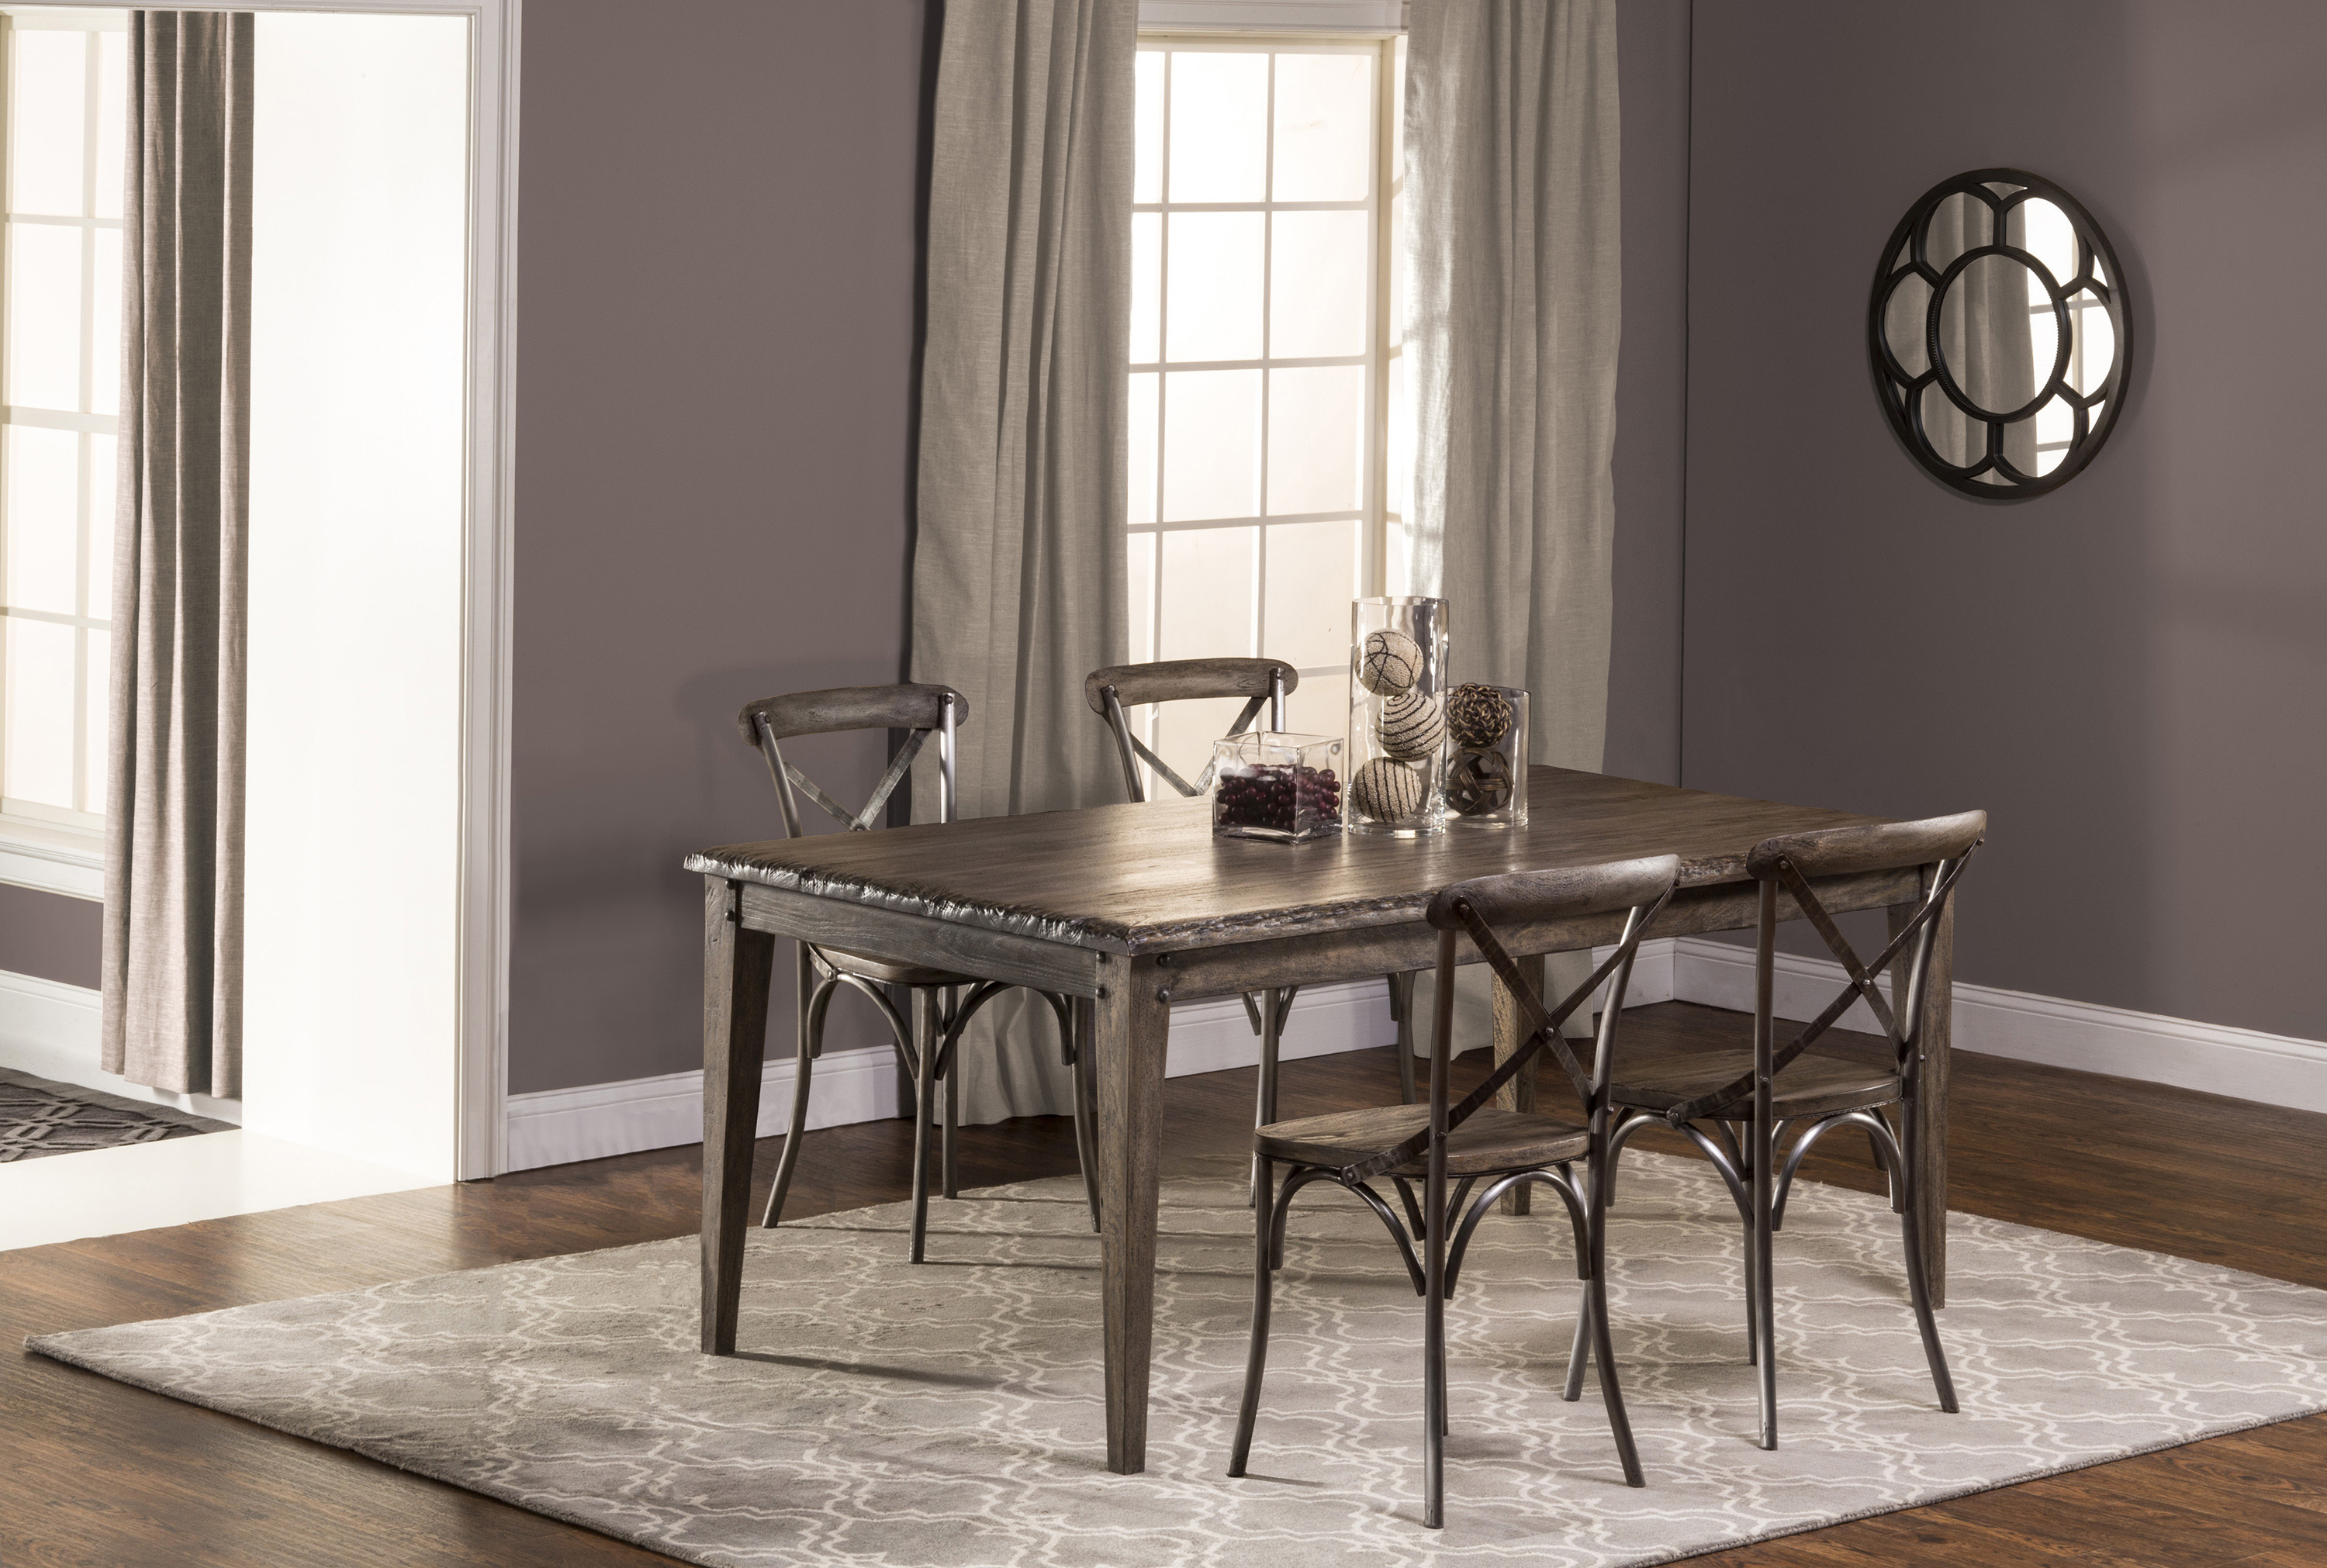 Hillsdale Lorient 5-Piece Rectangle Dining Set with X Back Din - Item Number: 5676DTRS5